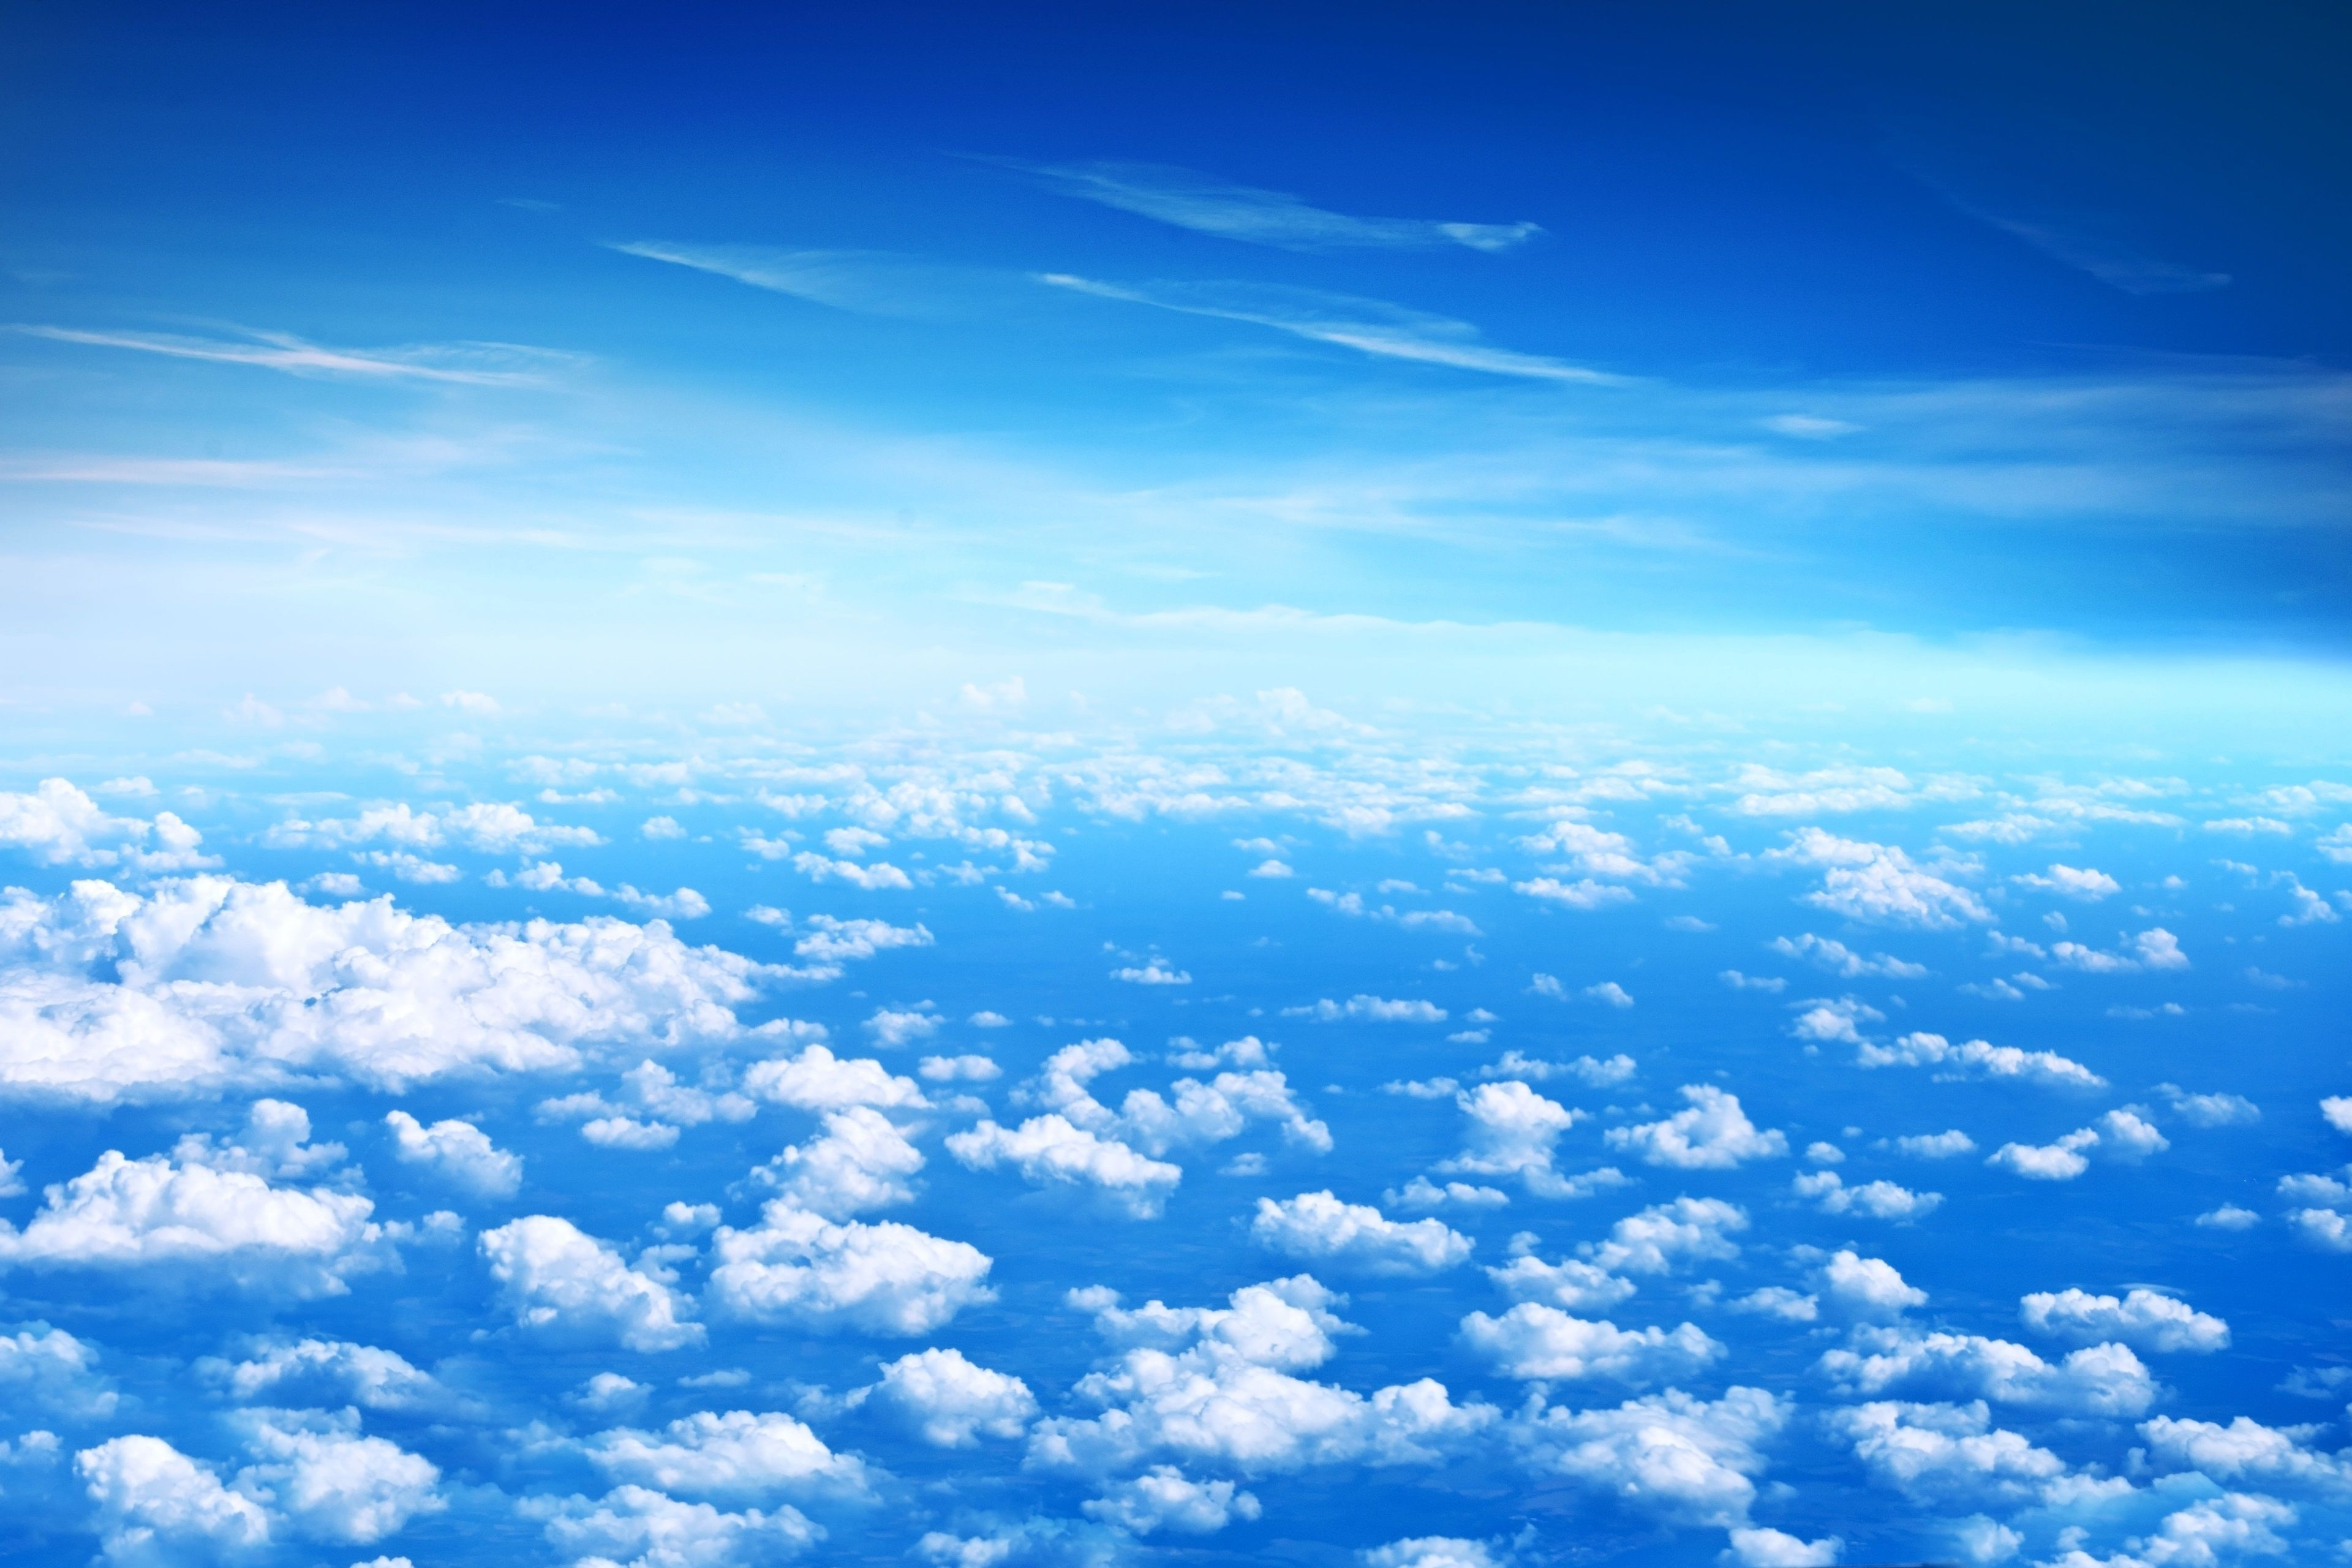 3840x2560 Clouds 4k Wallpaper Pc Background In 2020 Sky Photos Clouds Android Wallpaper Blue